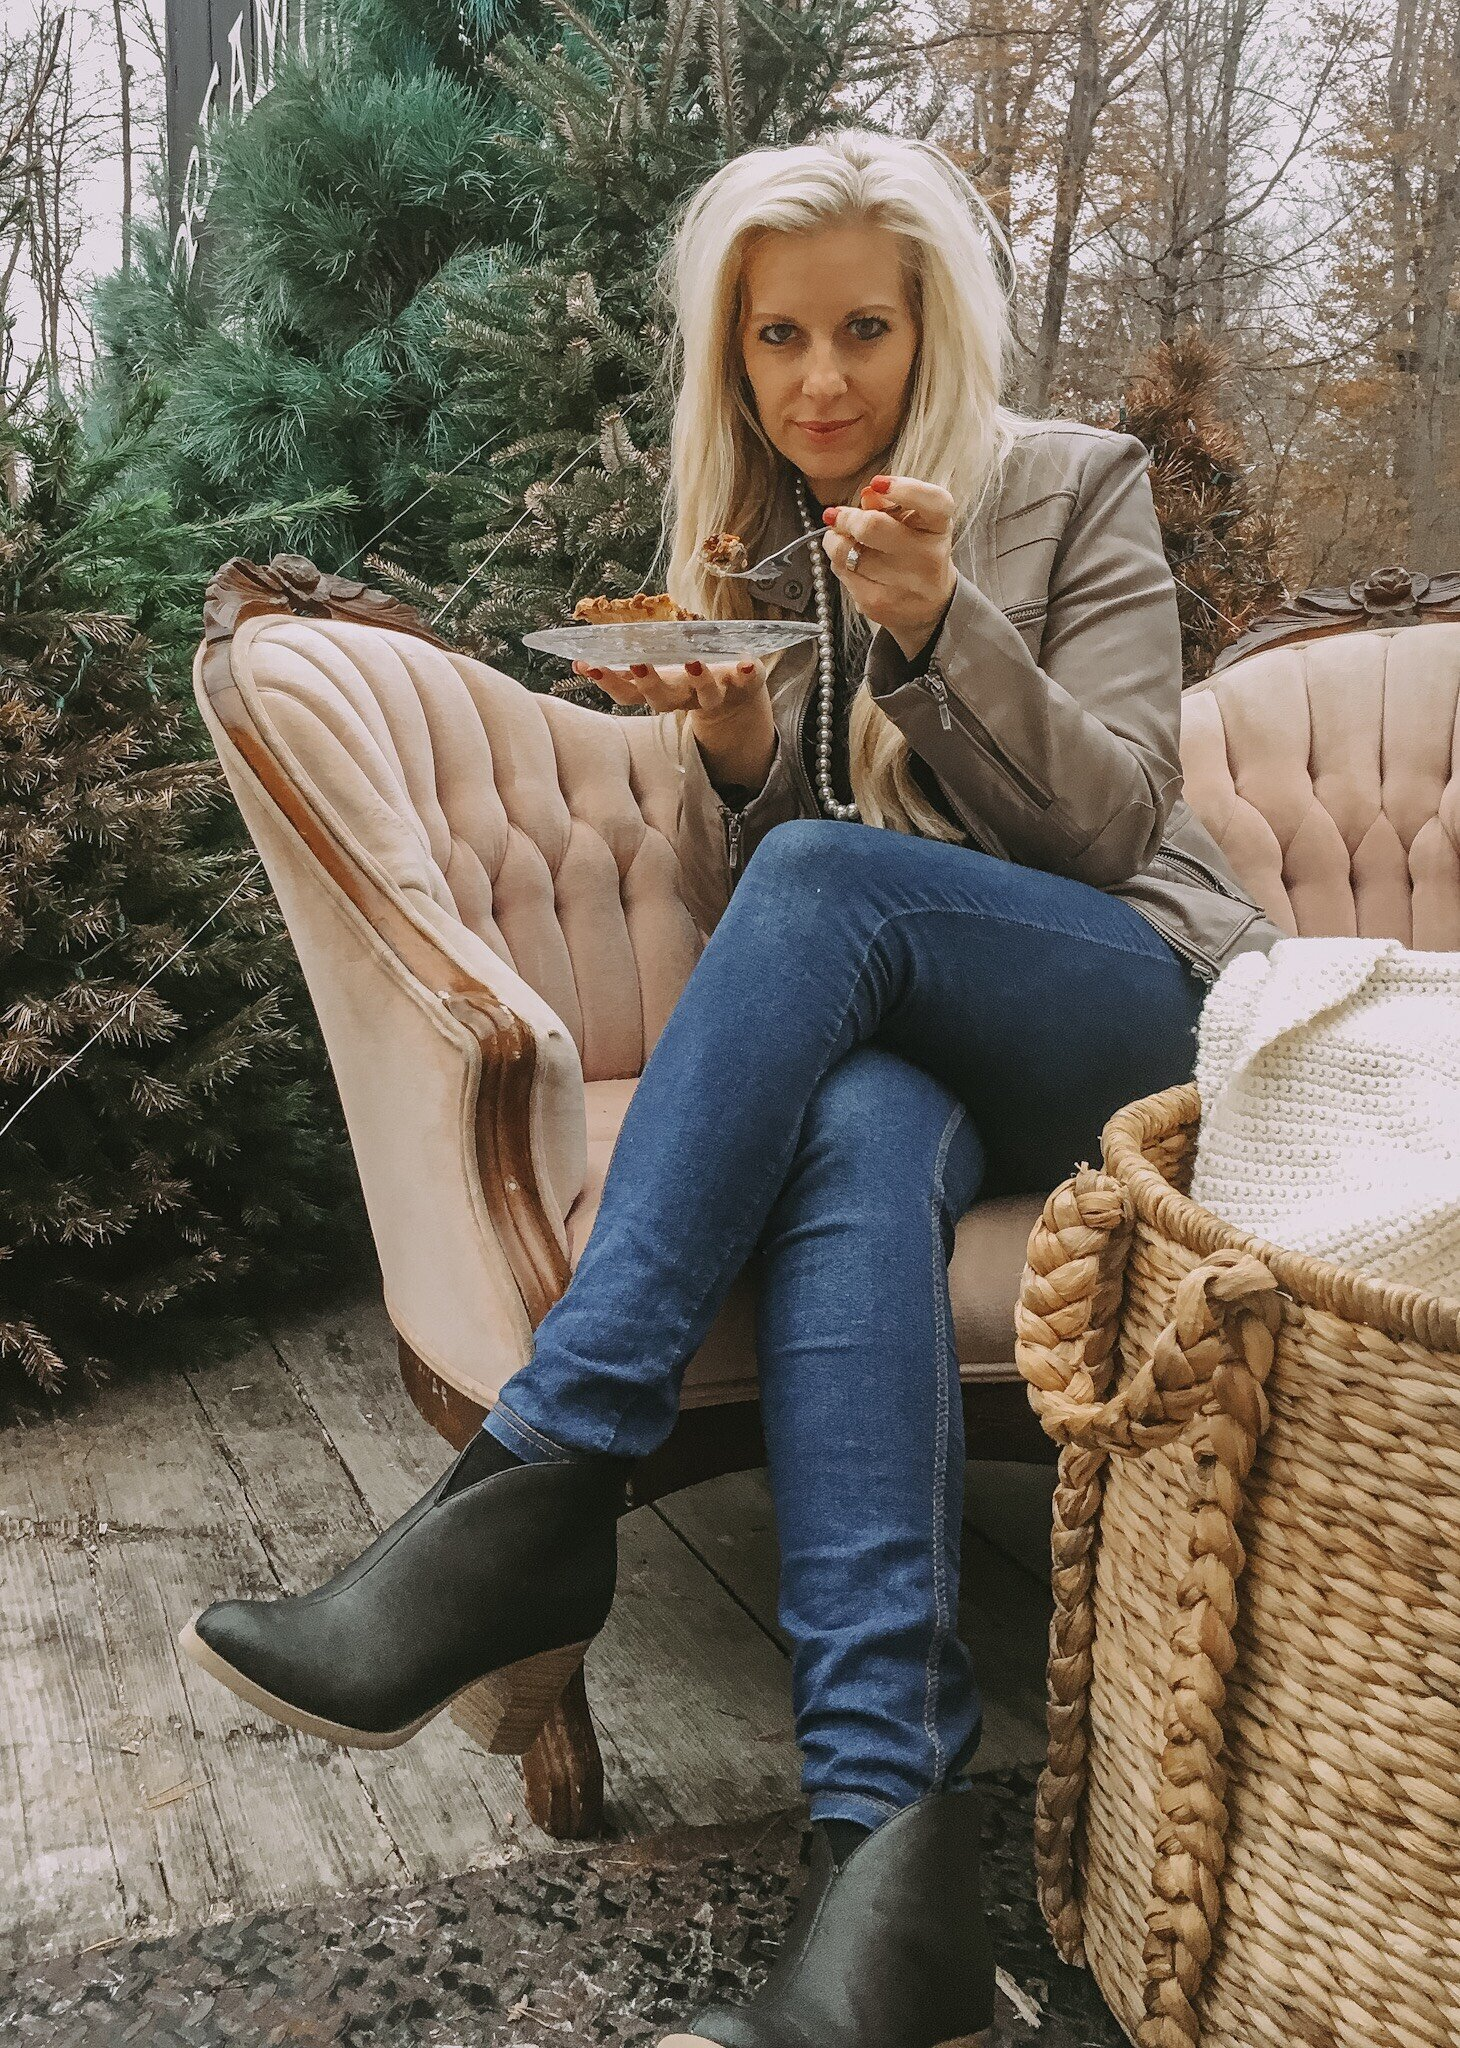 Sometimes finding the perfect Christmas tree requires plush couches and a pie break. Did I mention I'm sometimes a little over the top? Especially when it comes to Christmas!